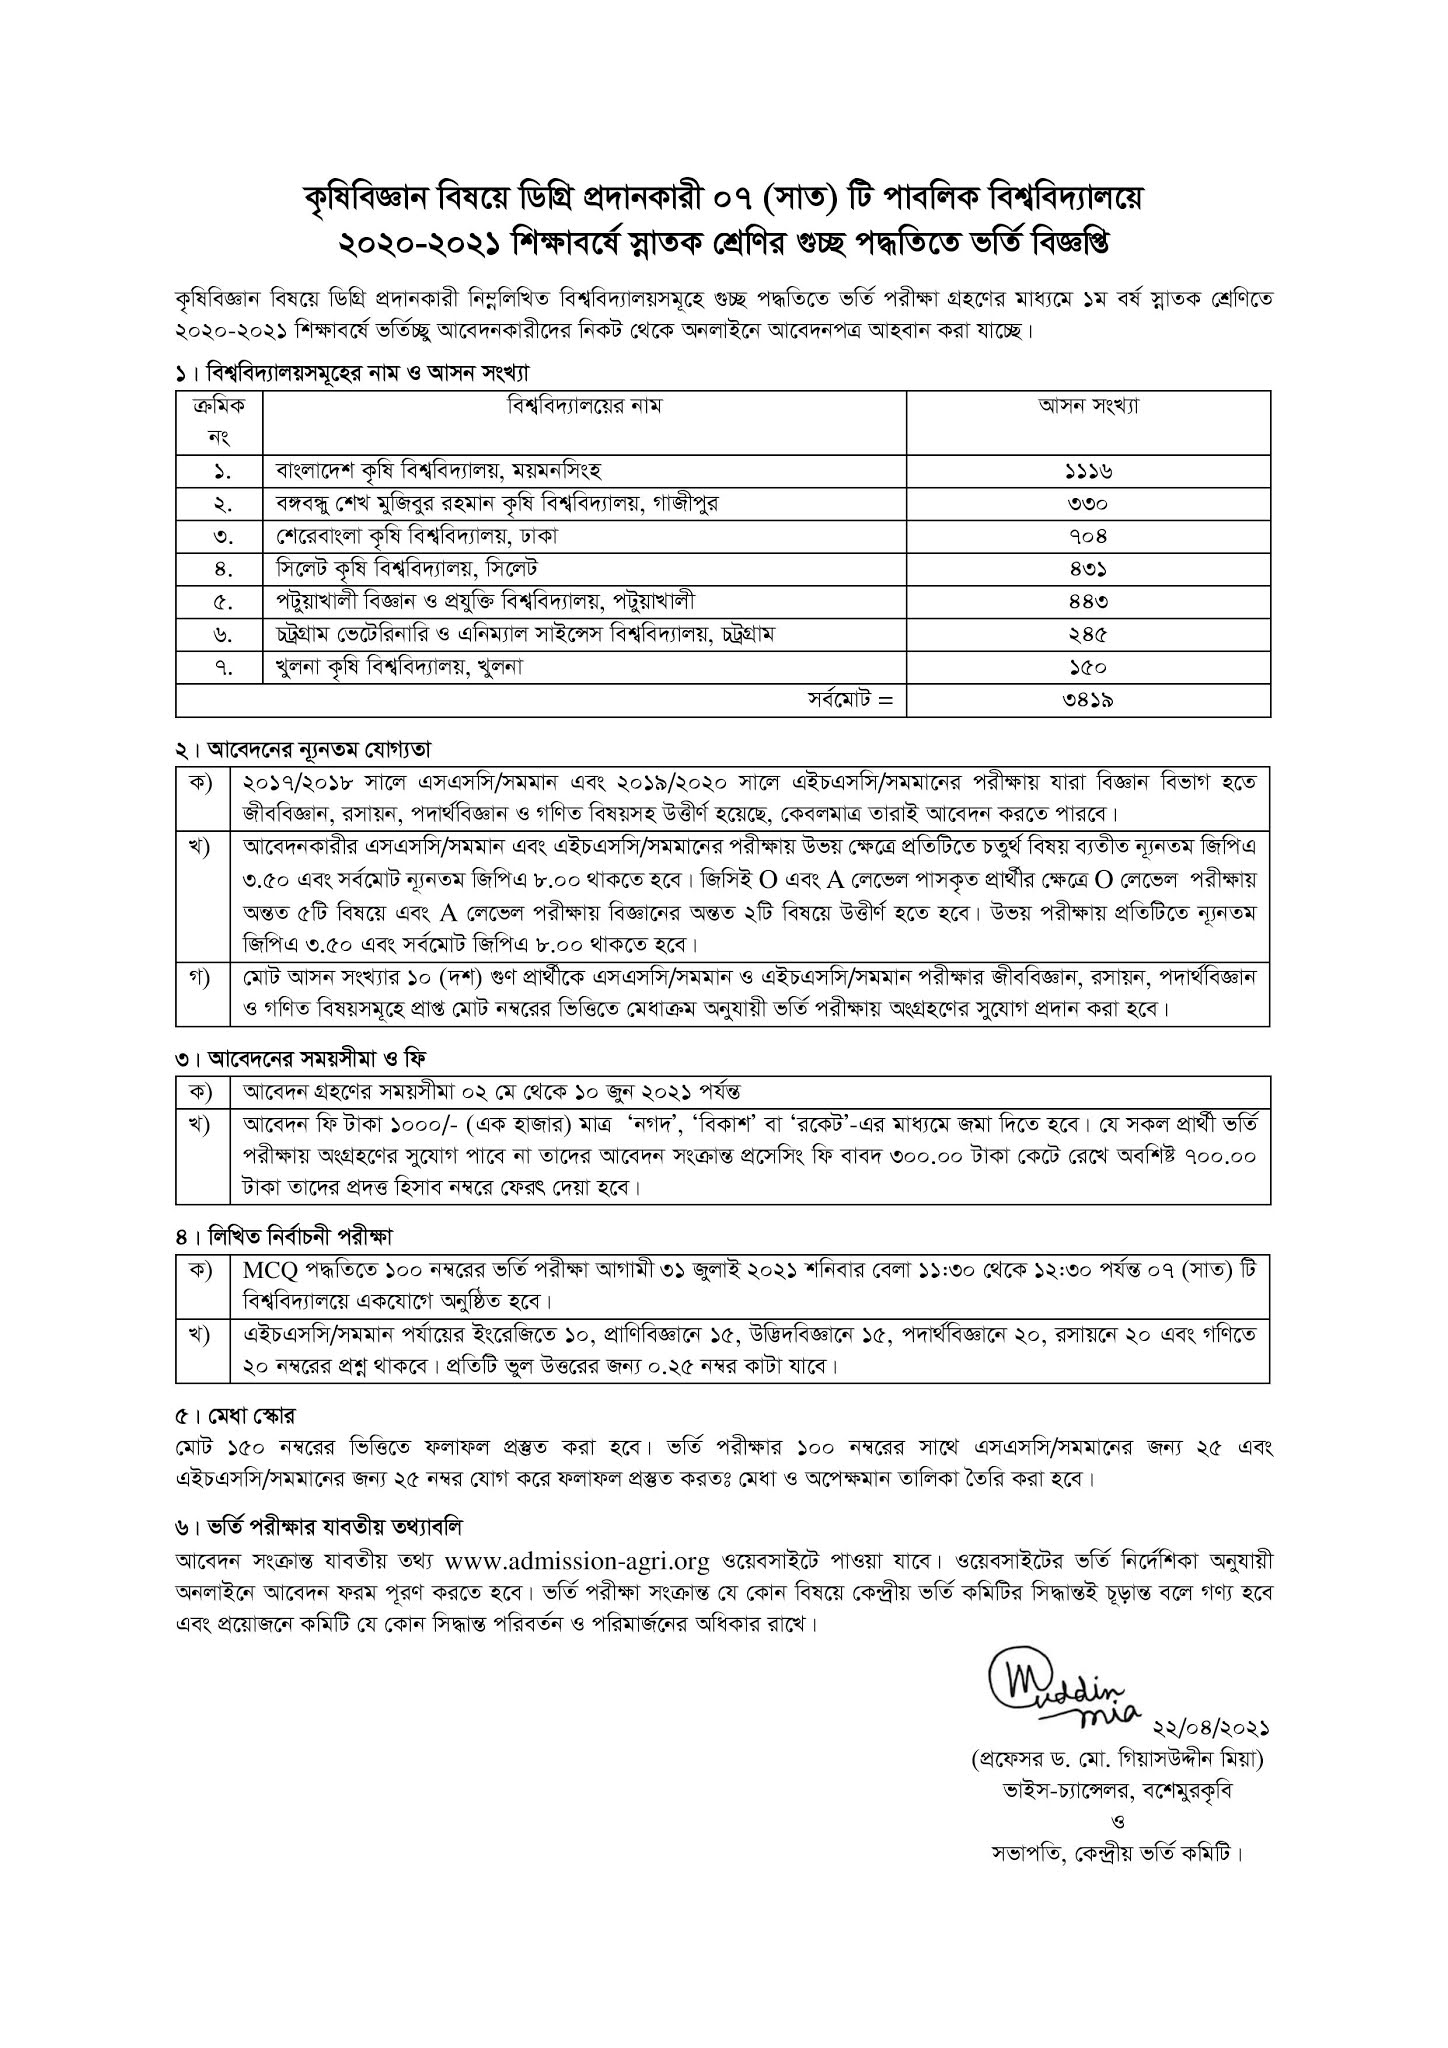 Agricultural University Admission Circular 2020-2021